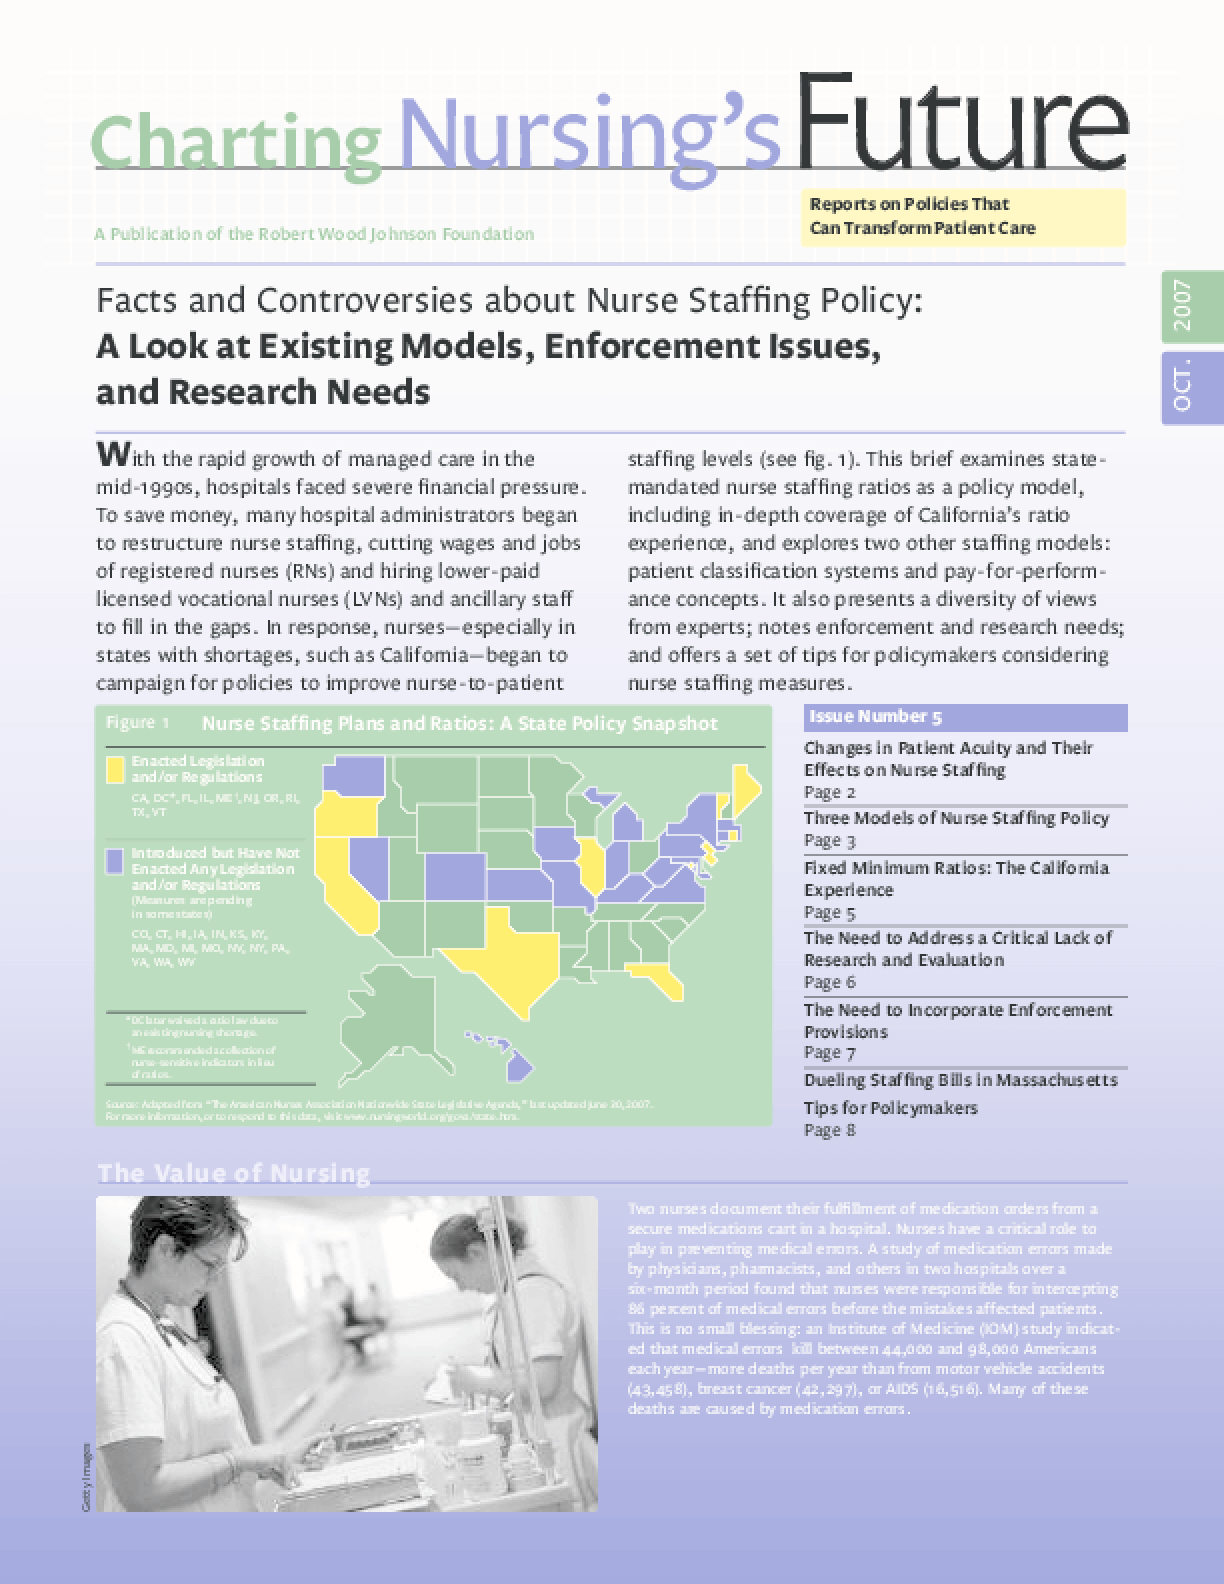 Facts and Controversies About Nurse Staffing Policy: A Look at Existing Models, Enforcement Issues, and Research Needs